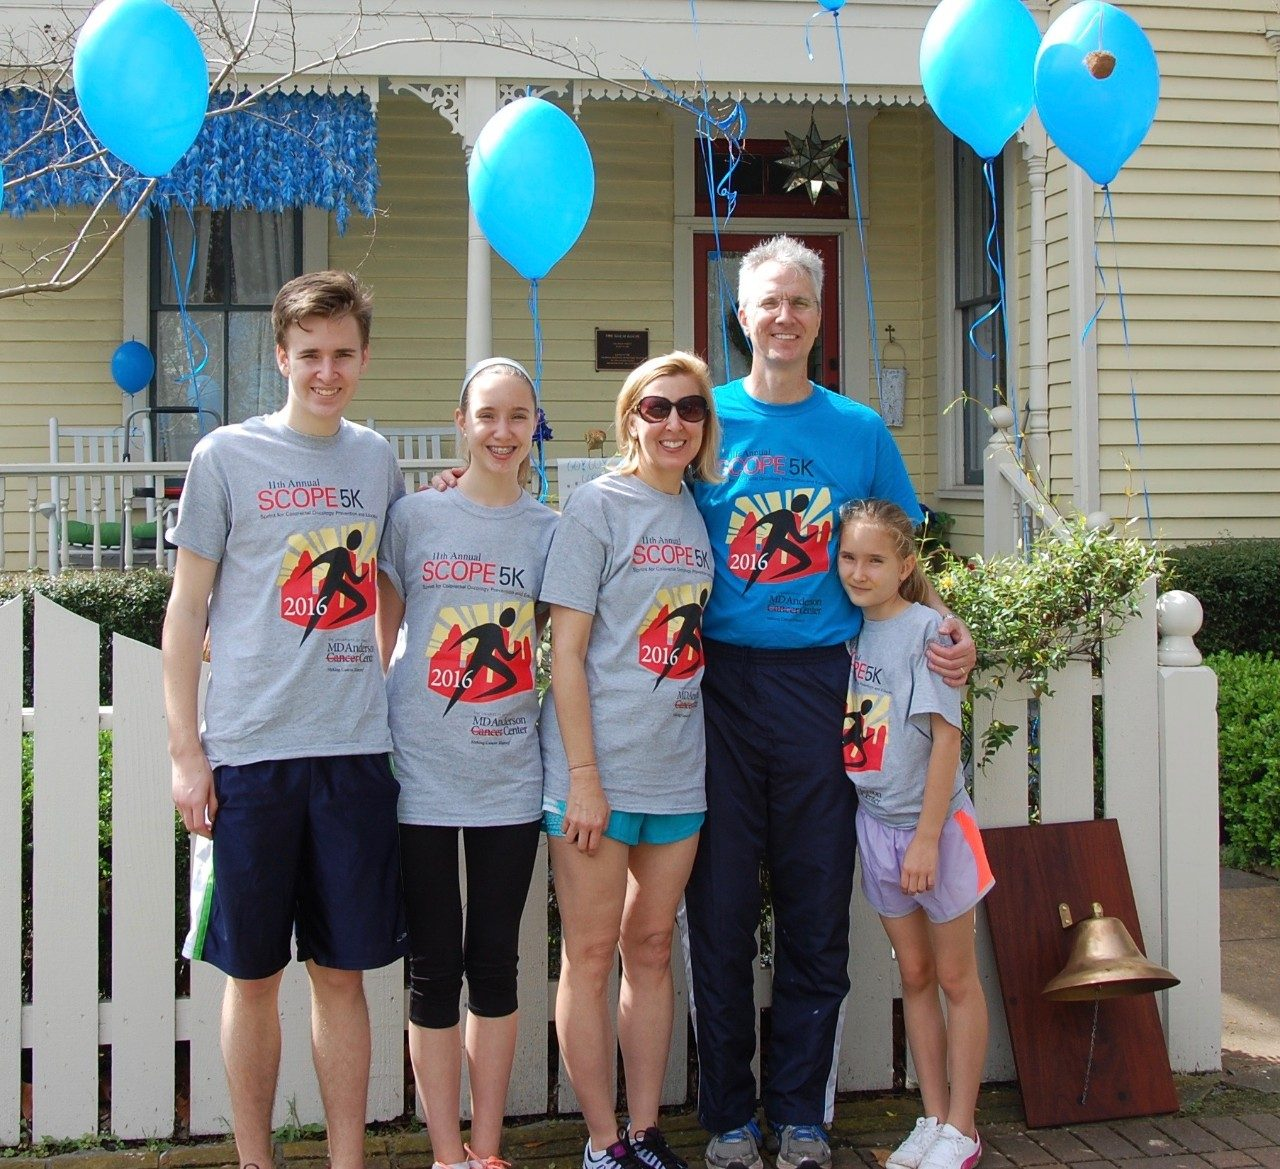 Doug Shoemaker, colon cancer survivor, with his family